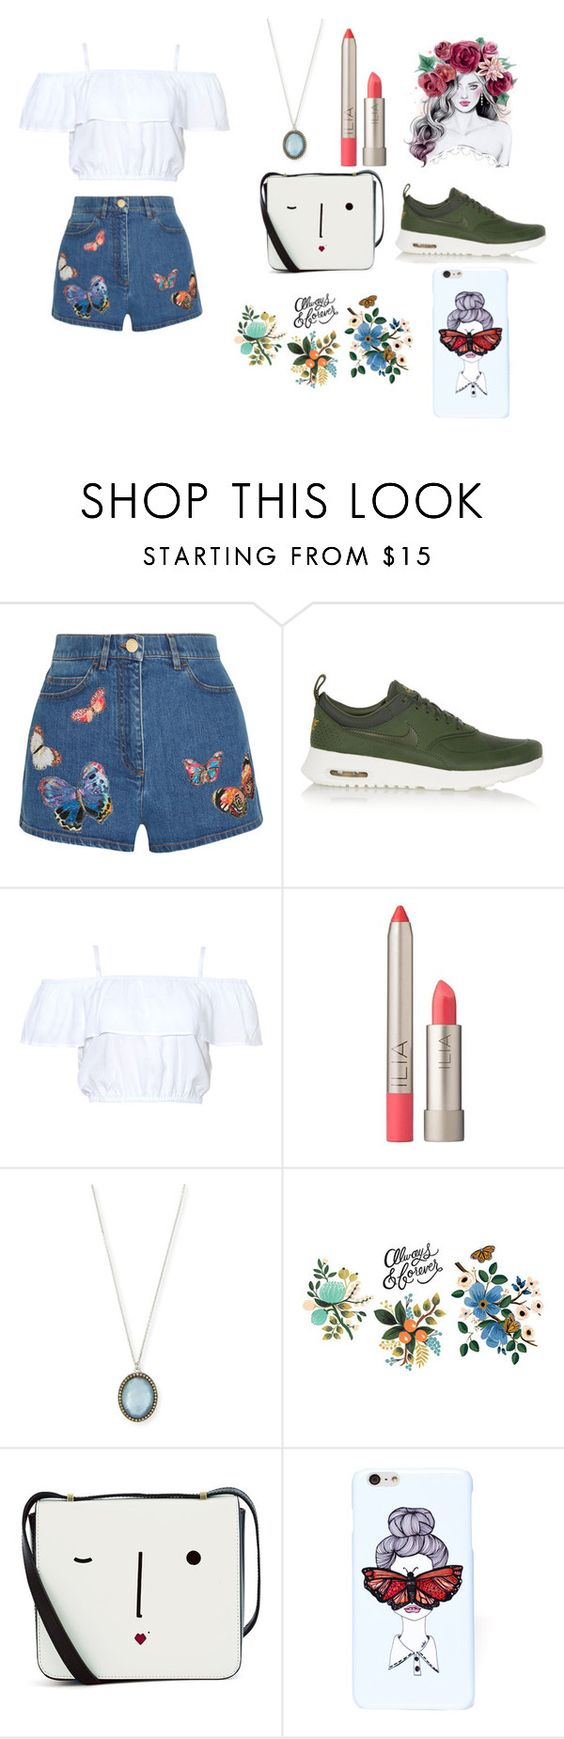 """Untitled #249"" by dreamarie151 on Polyvore featuring Valentino, NIKE, Ilia, Armenta, Tattly, Lulu Guinness, Valfré, women's clothing, women and female"